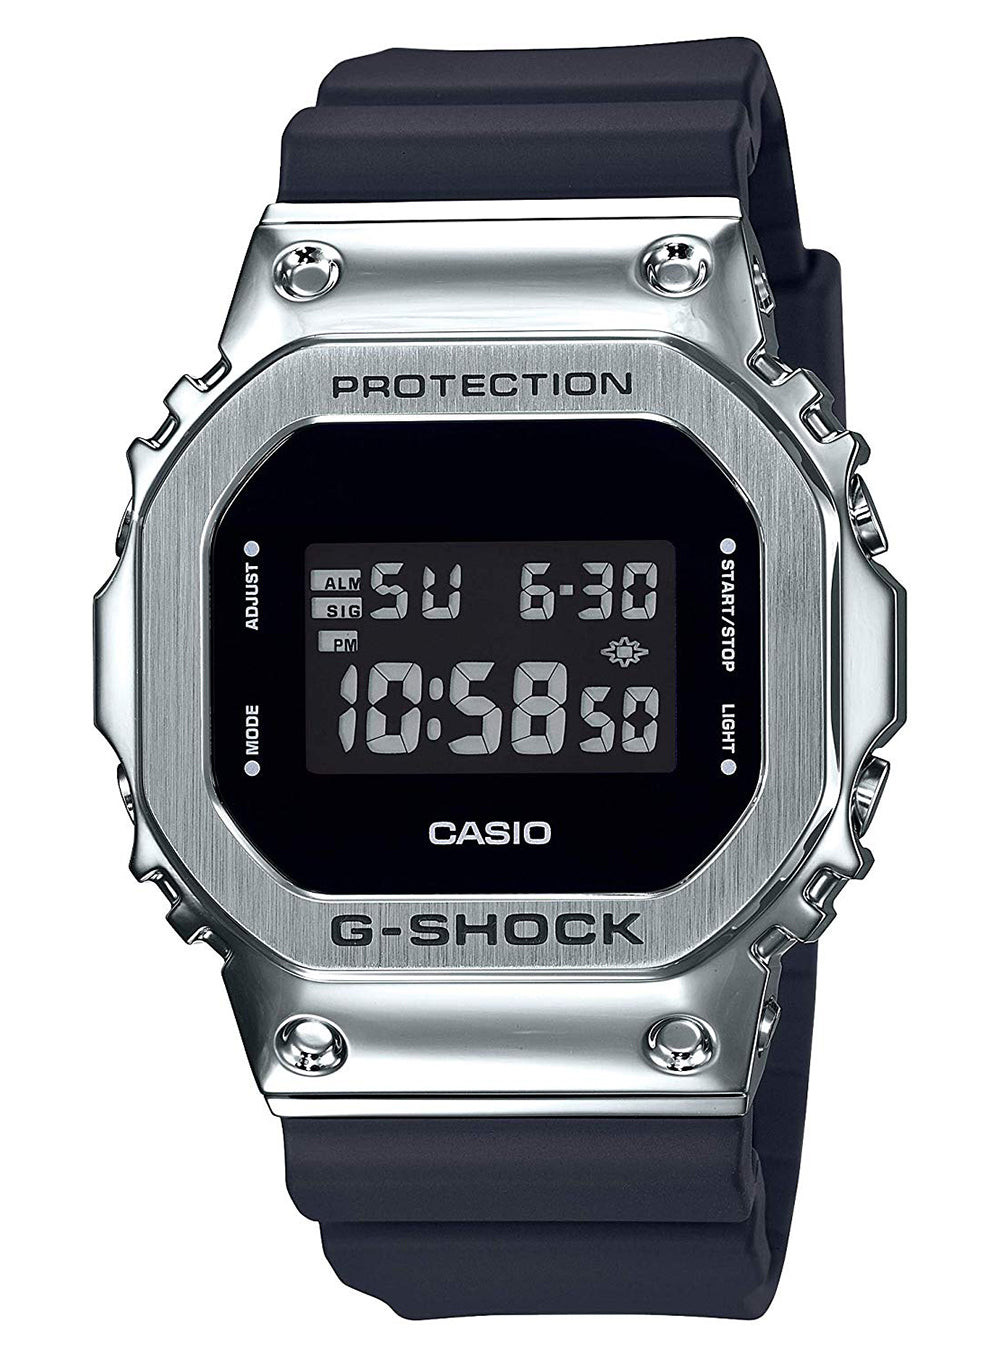 CASIO G-SHOCK GM-5600-1JF JDM (Japanese Domestic Market)